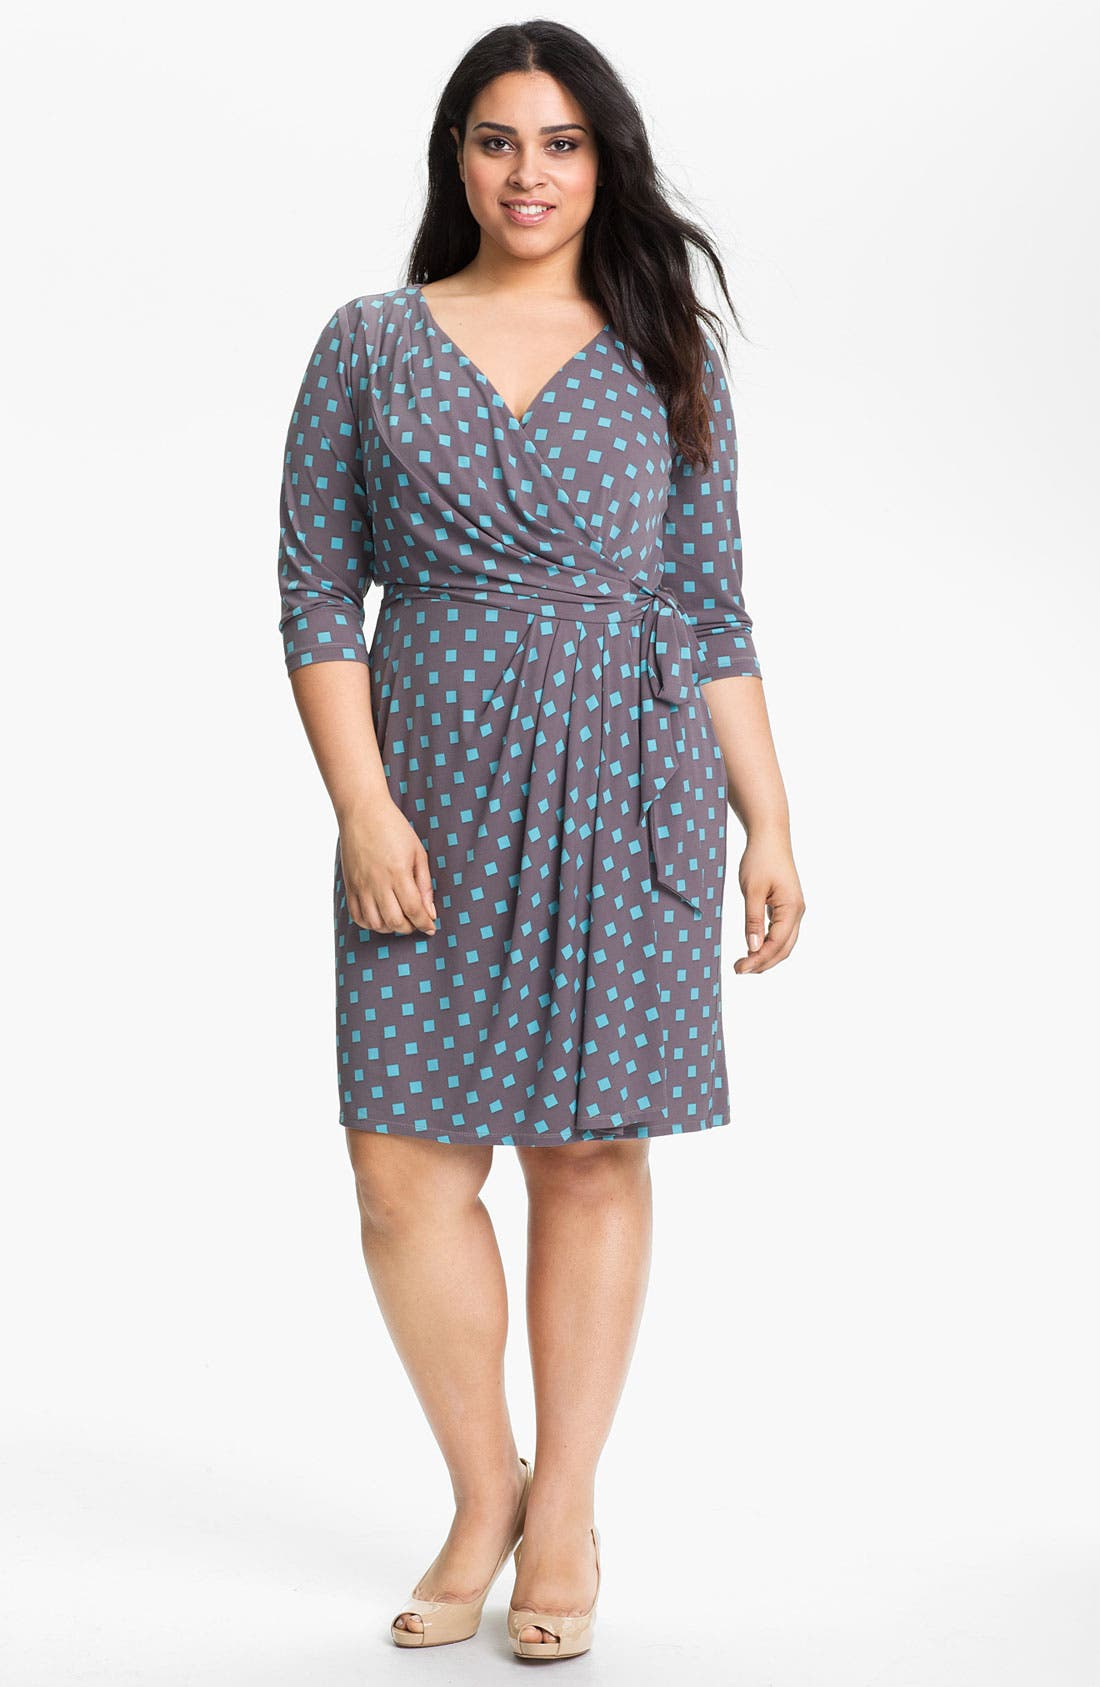 Alternate Image 1 Selected - Suzi Chin for Maggy Boutique Print Wrap Dress (Plus Size)